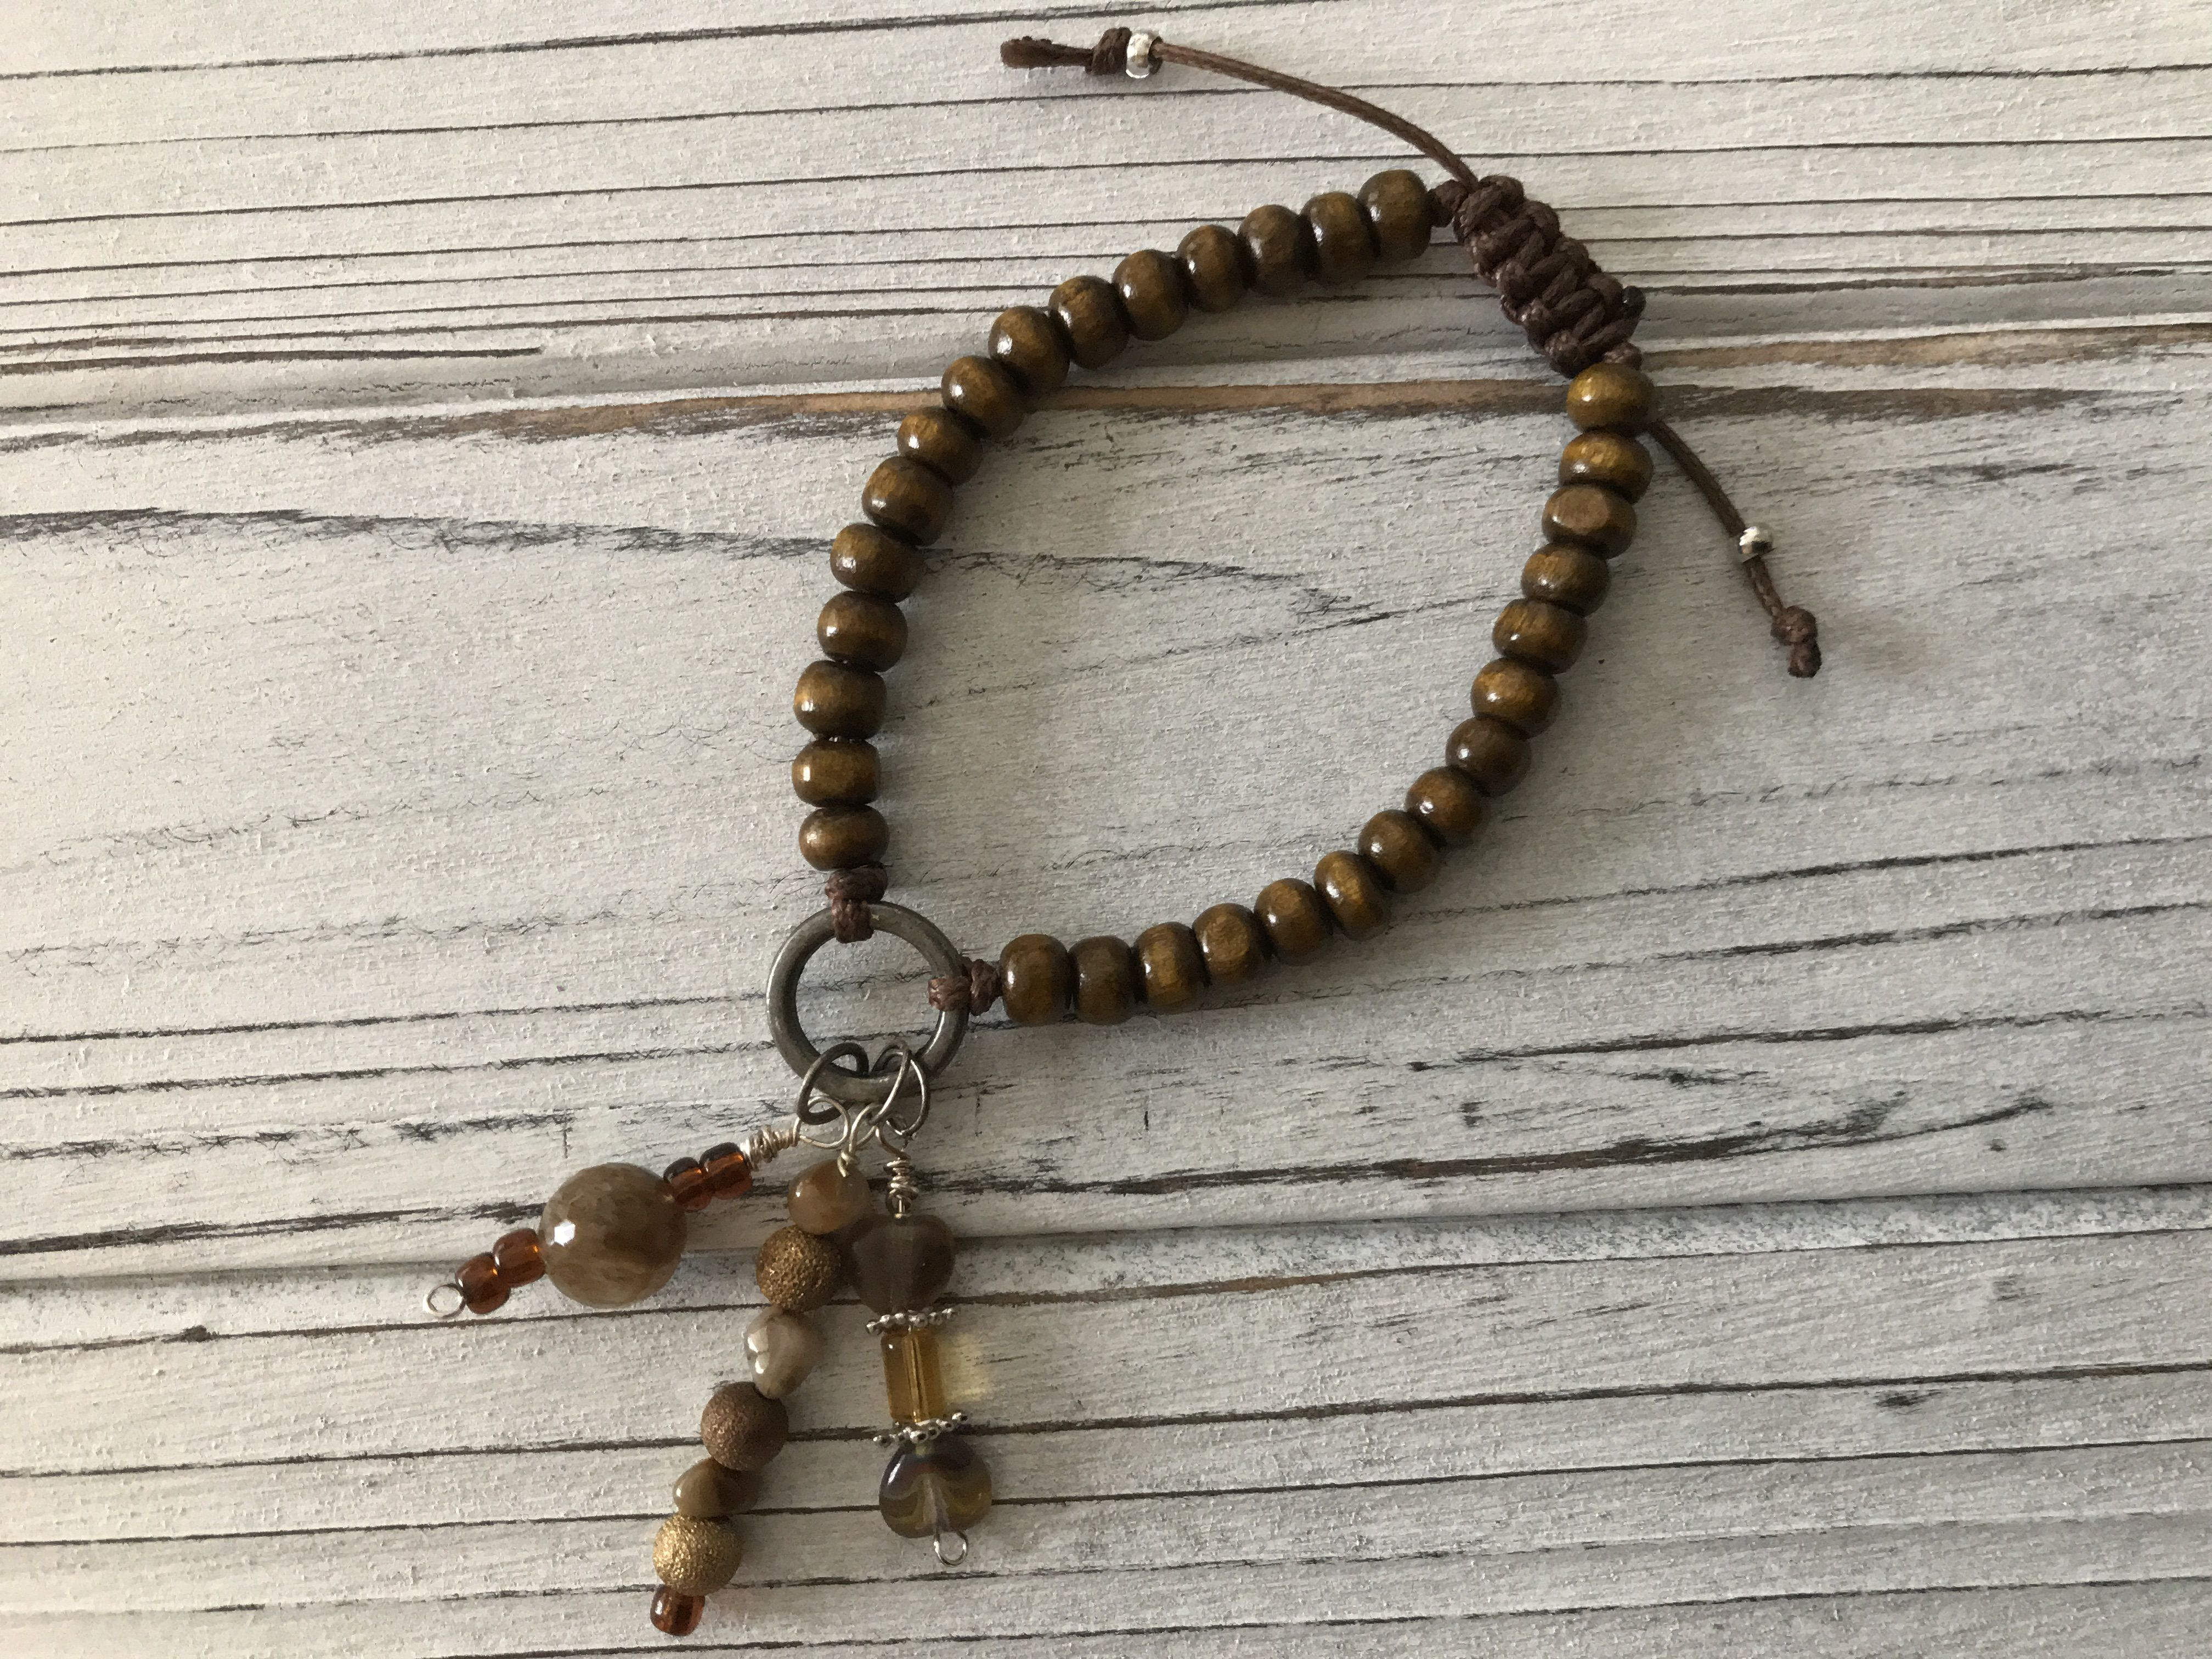 macrame stackthem forhim druzy forher adjustable fitforall dragonfly beads charms druzyheart